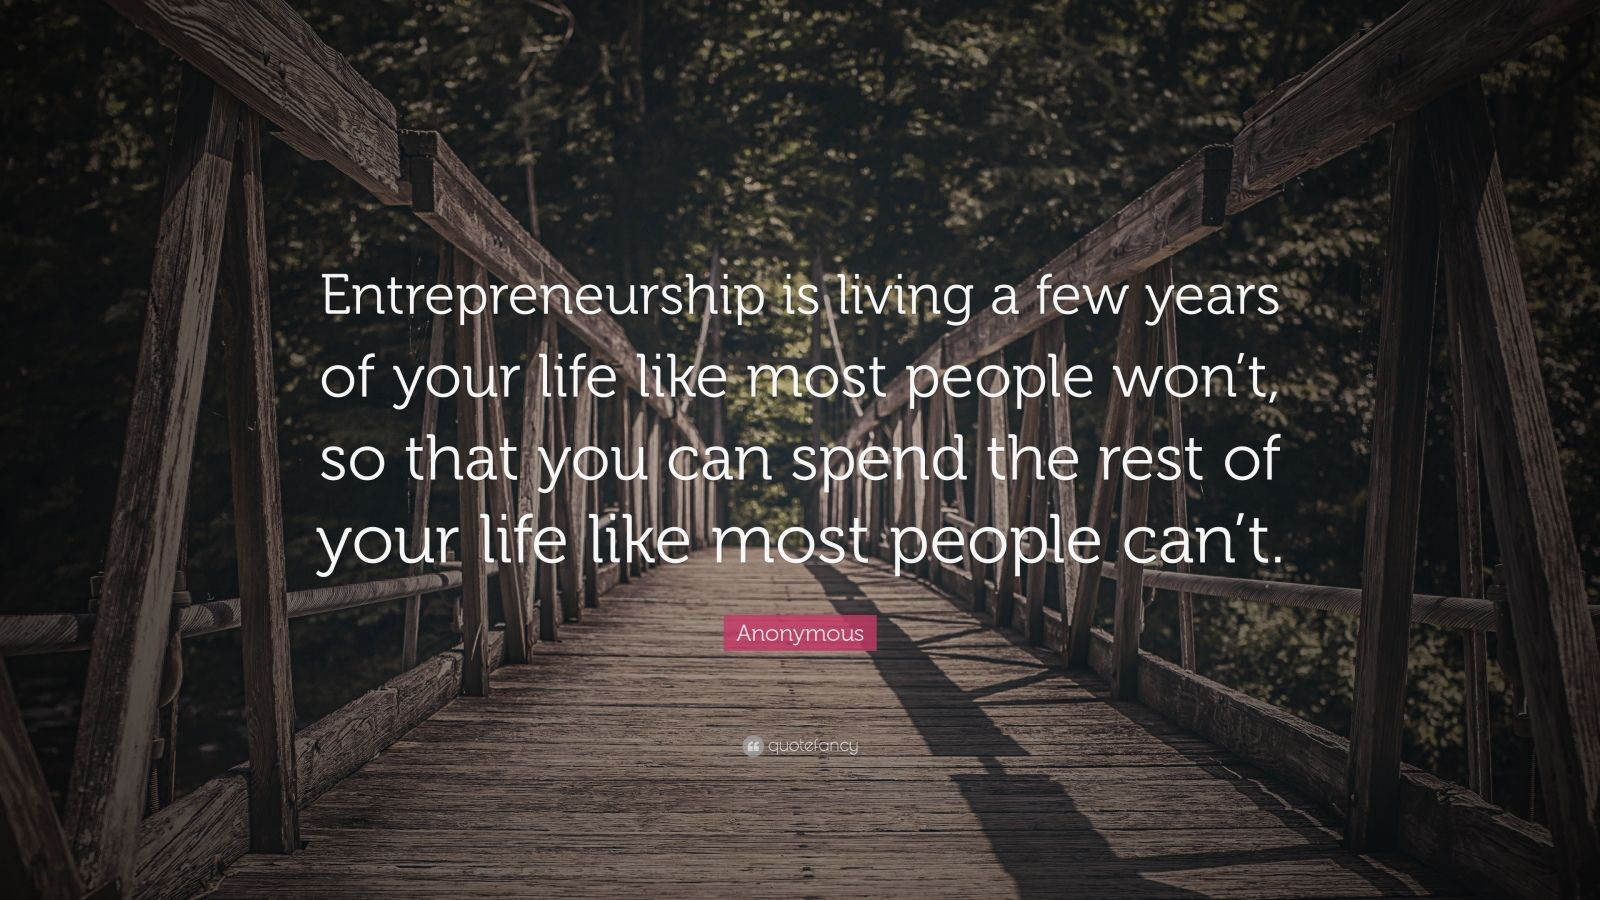 Motivational Life Quotes Wallpapers Anonymous Quote Entrepreneurship Is Living A Few Years